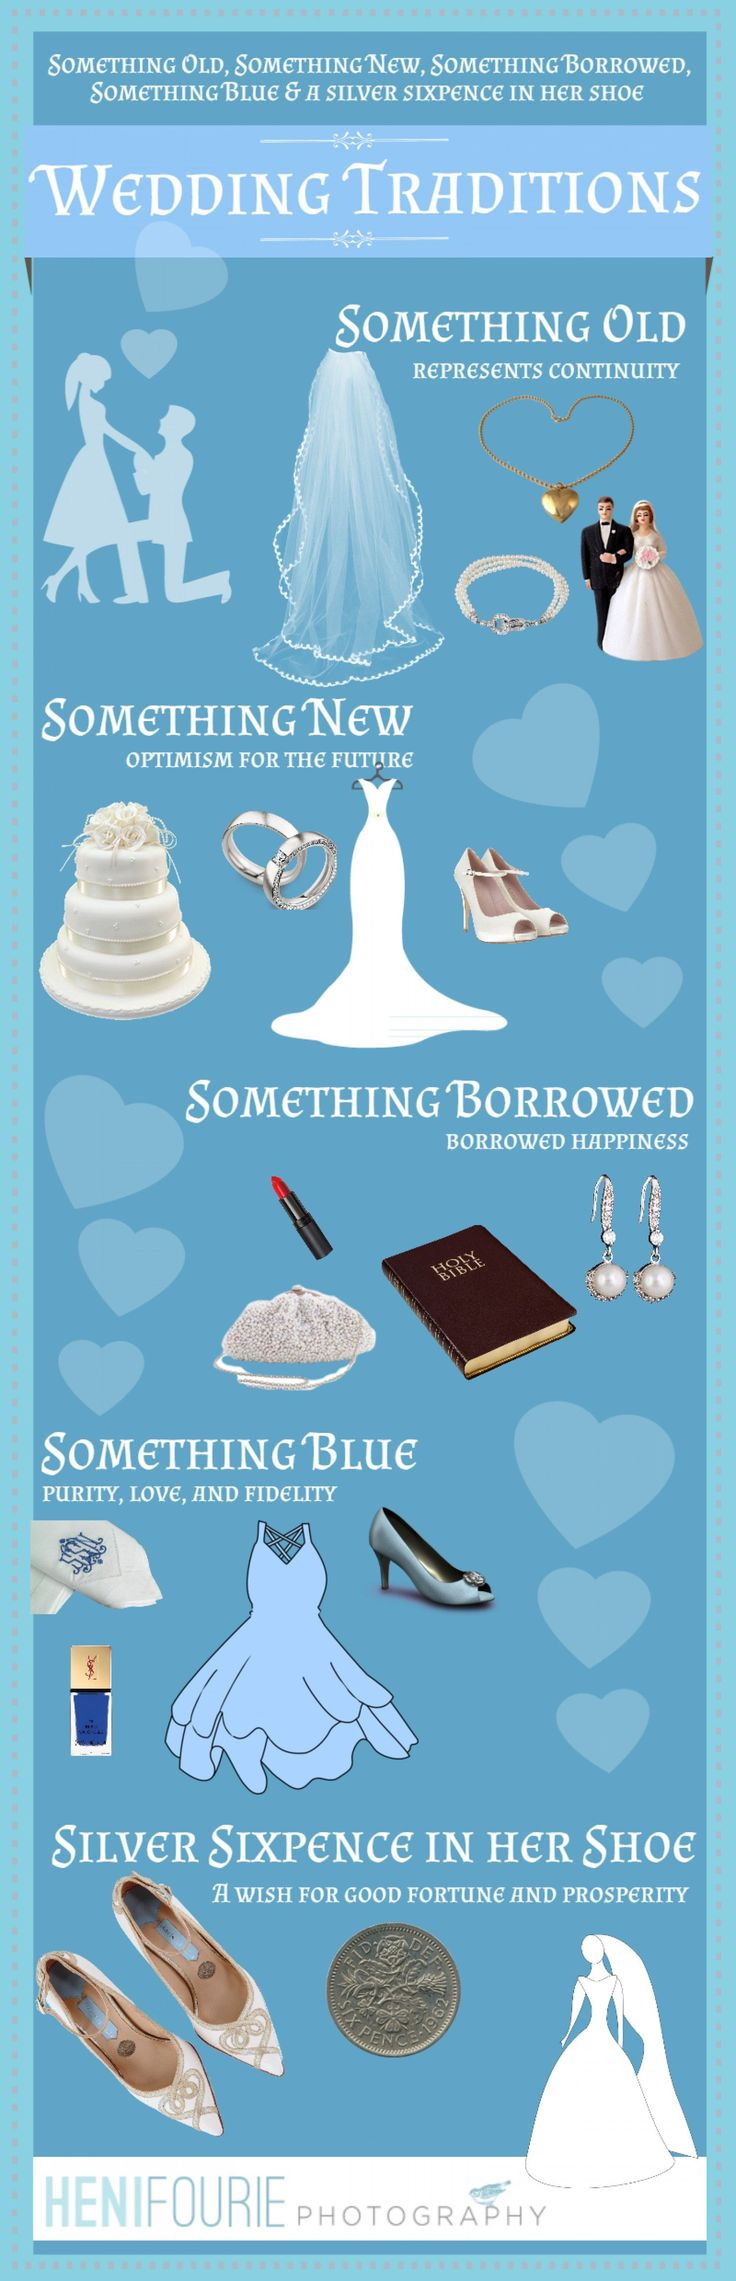 17. Wedding Tradition: Something old, something new, something borrowed, something blue & a sixpence in her shoe #RebeccaIngramContest #FijiAirways #YasawaIslandResort